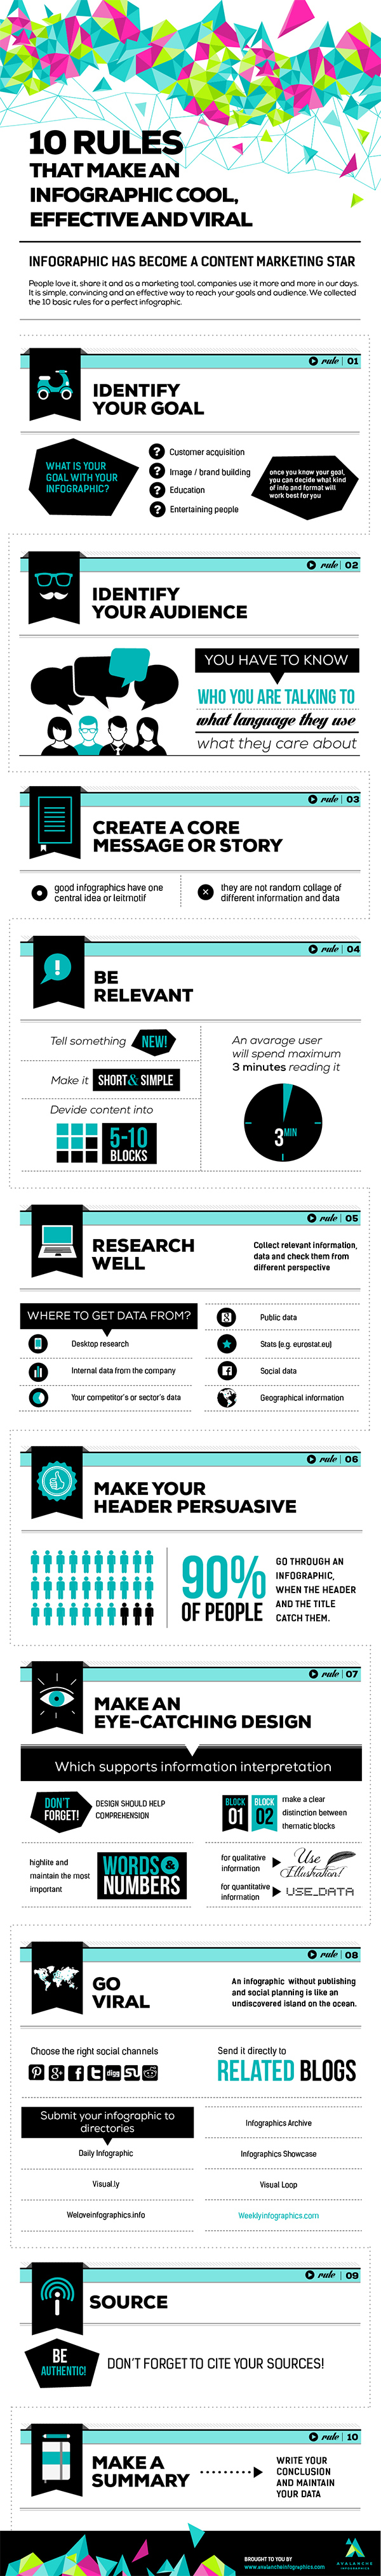 How to Create Infographic Which is Cool, Effective, and Viral?